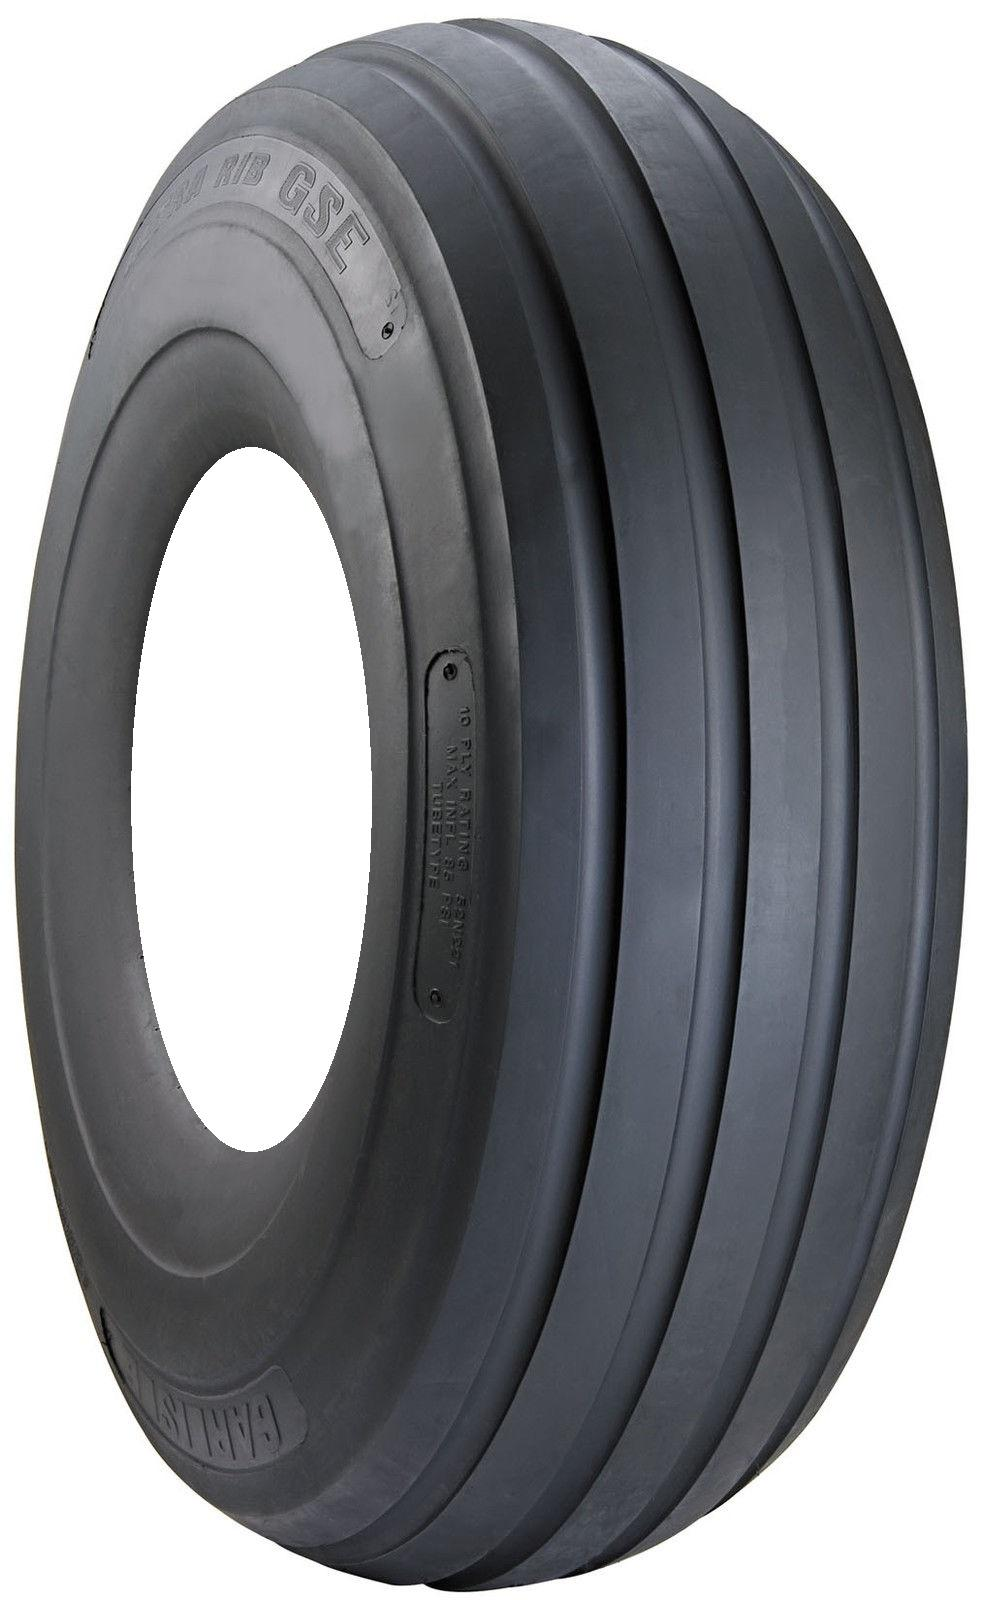 Carlisle Ground Force GSE 6.90-9 10 Ply Multi - Purpose Tire